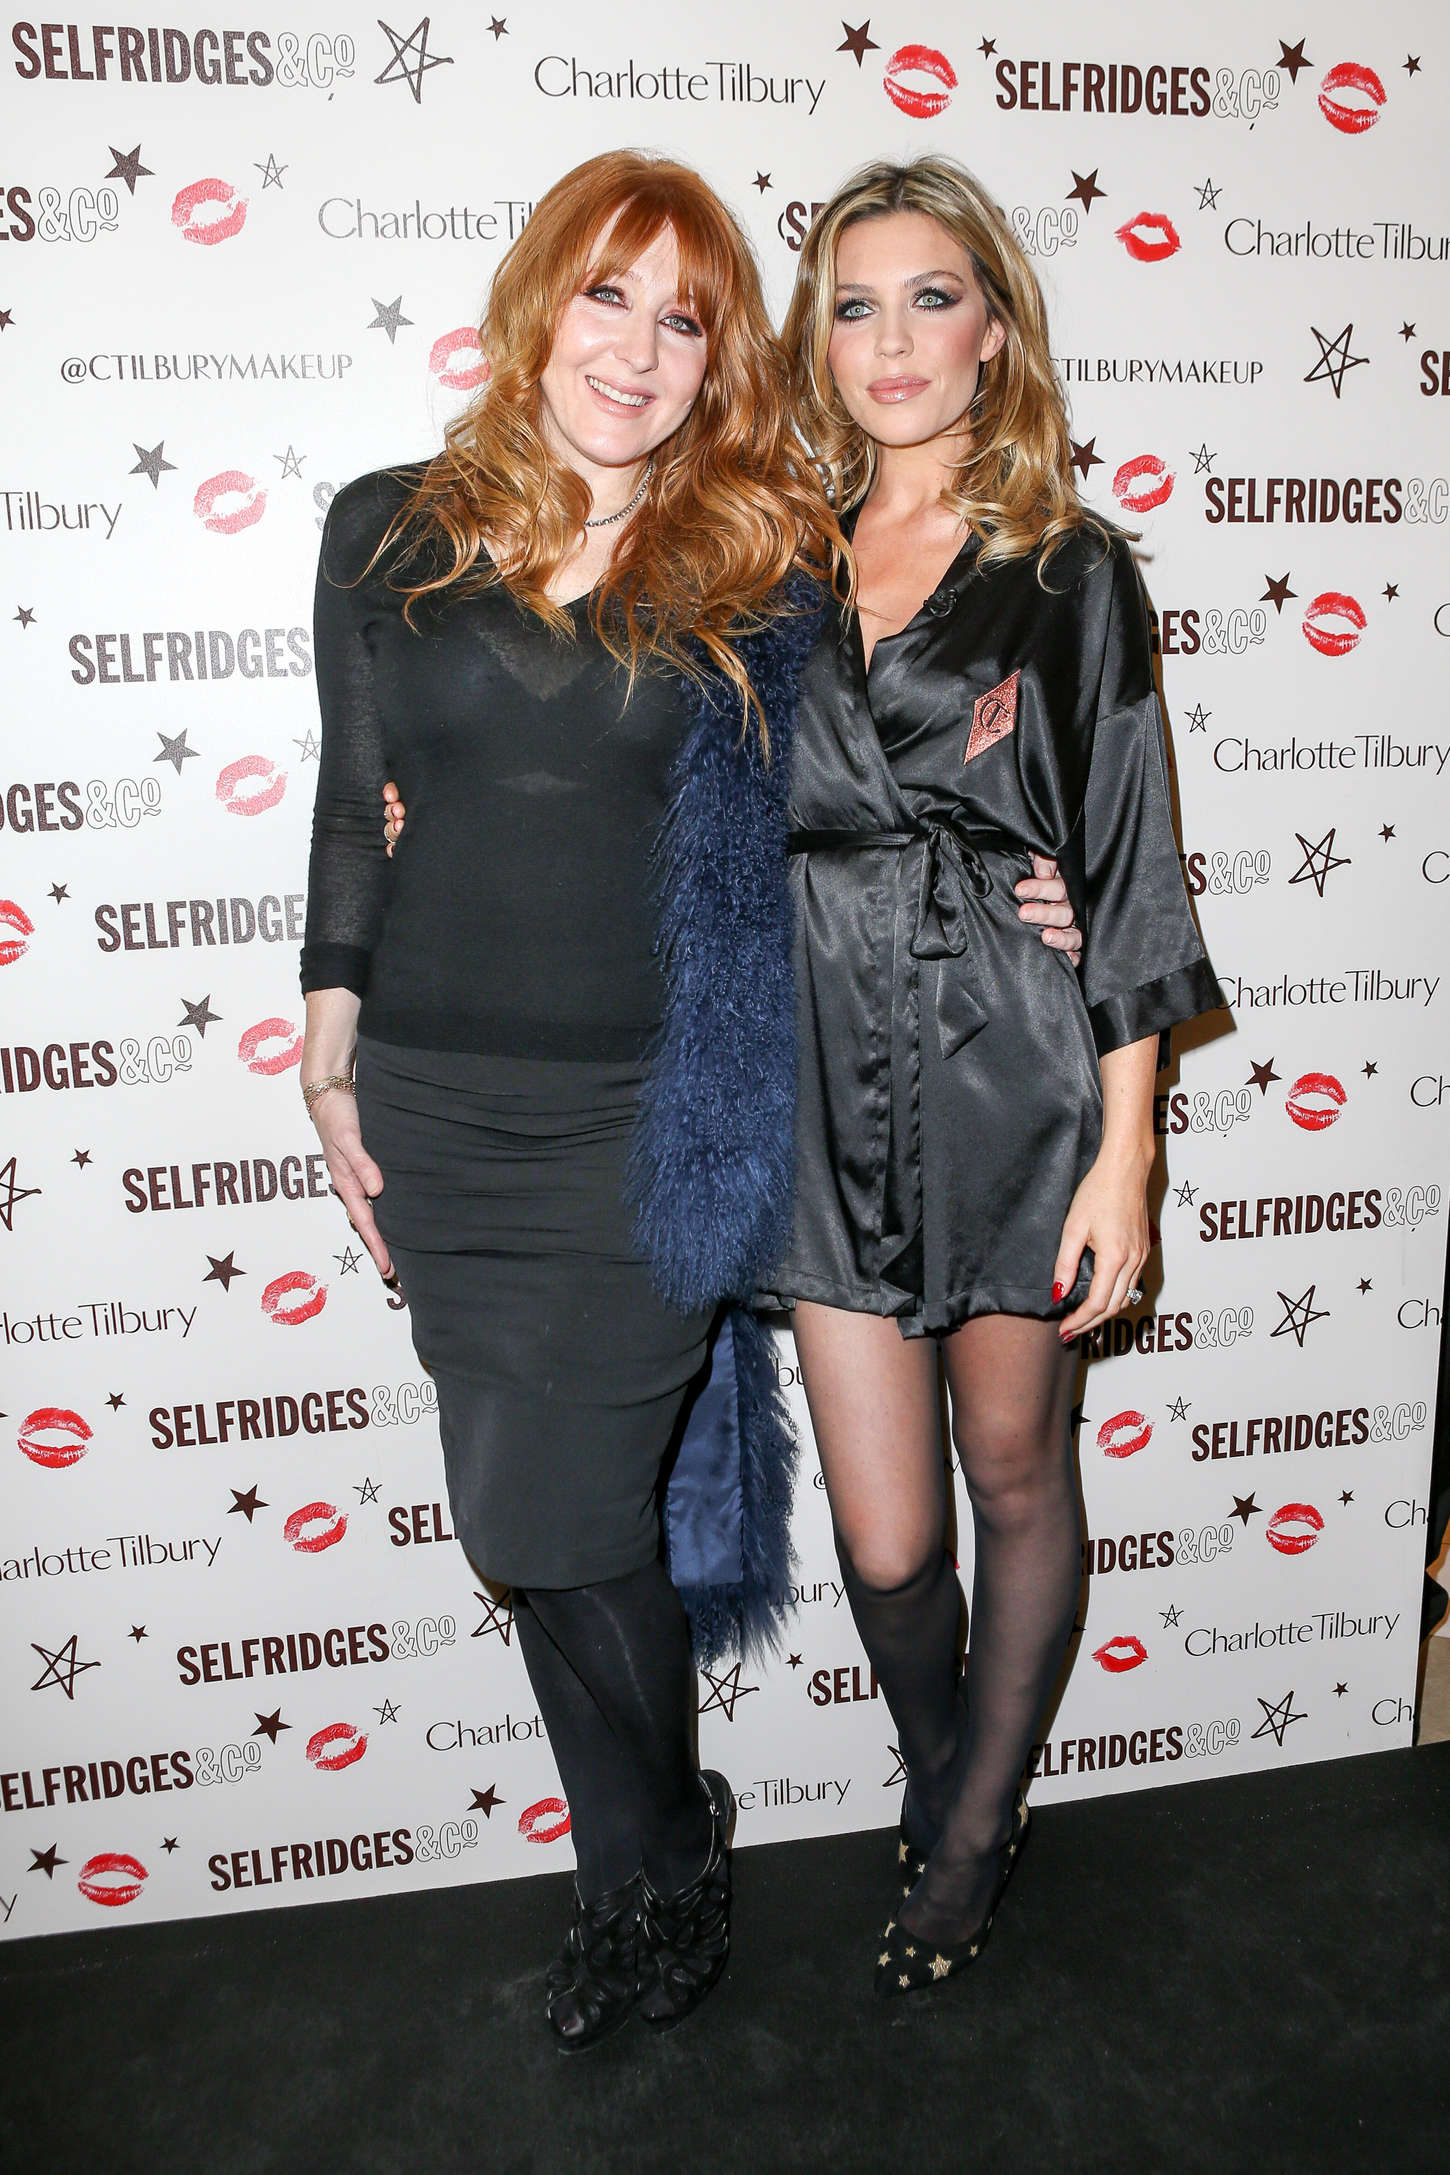 Abbey Clancy Selfridges Store in Manchester